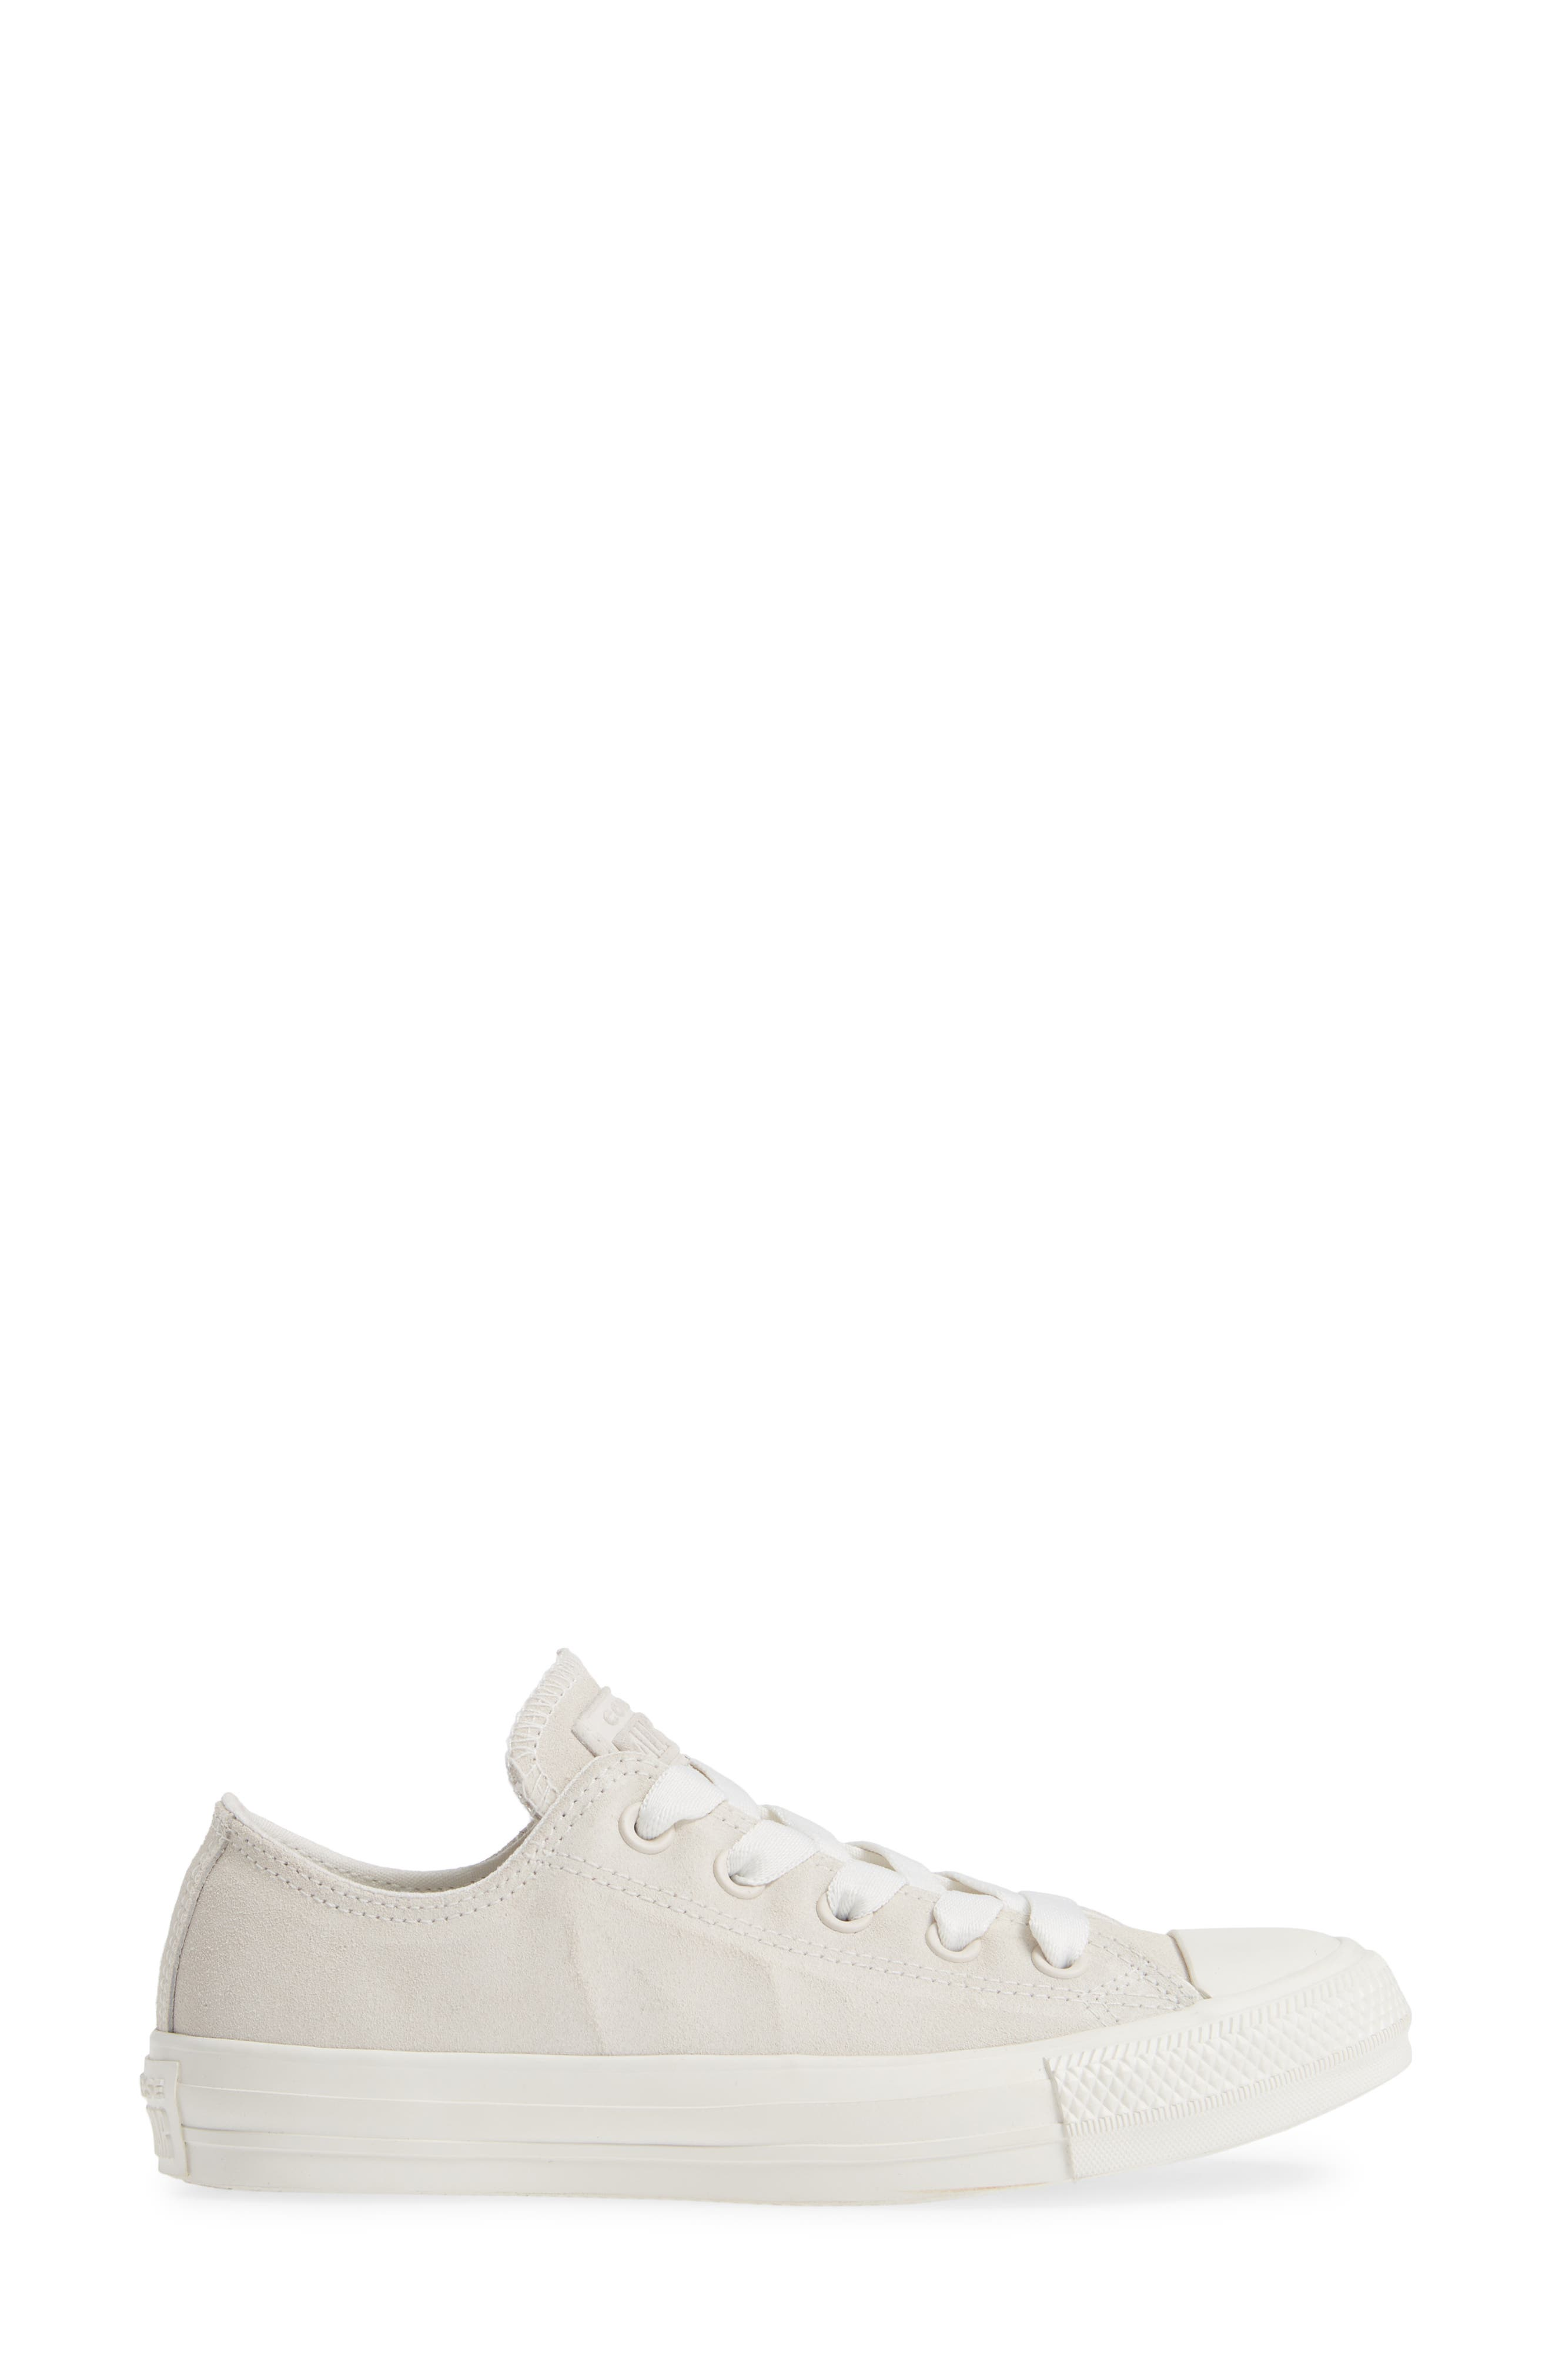 Chuck Taylor<sup>®</sup> All Star<sup>®</sup> Ox Sneaker,                             Alternate thumbnail 3, color,                             VINTAGE WHITE SUEDE